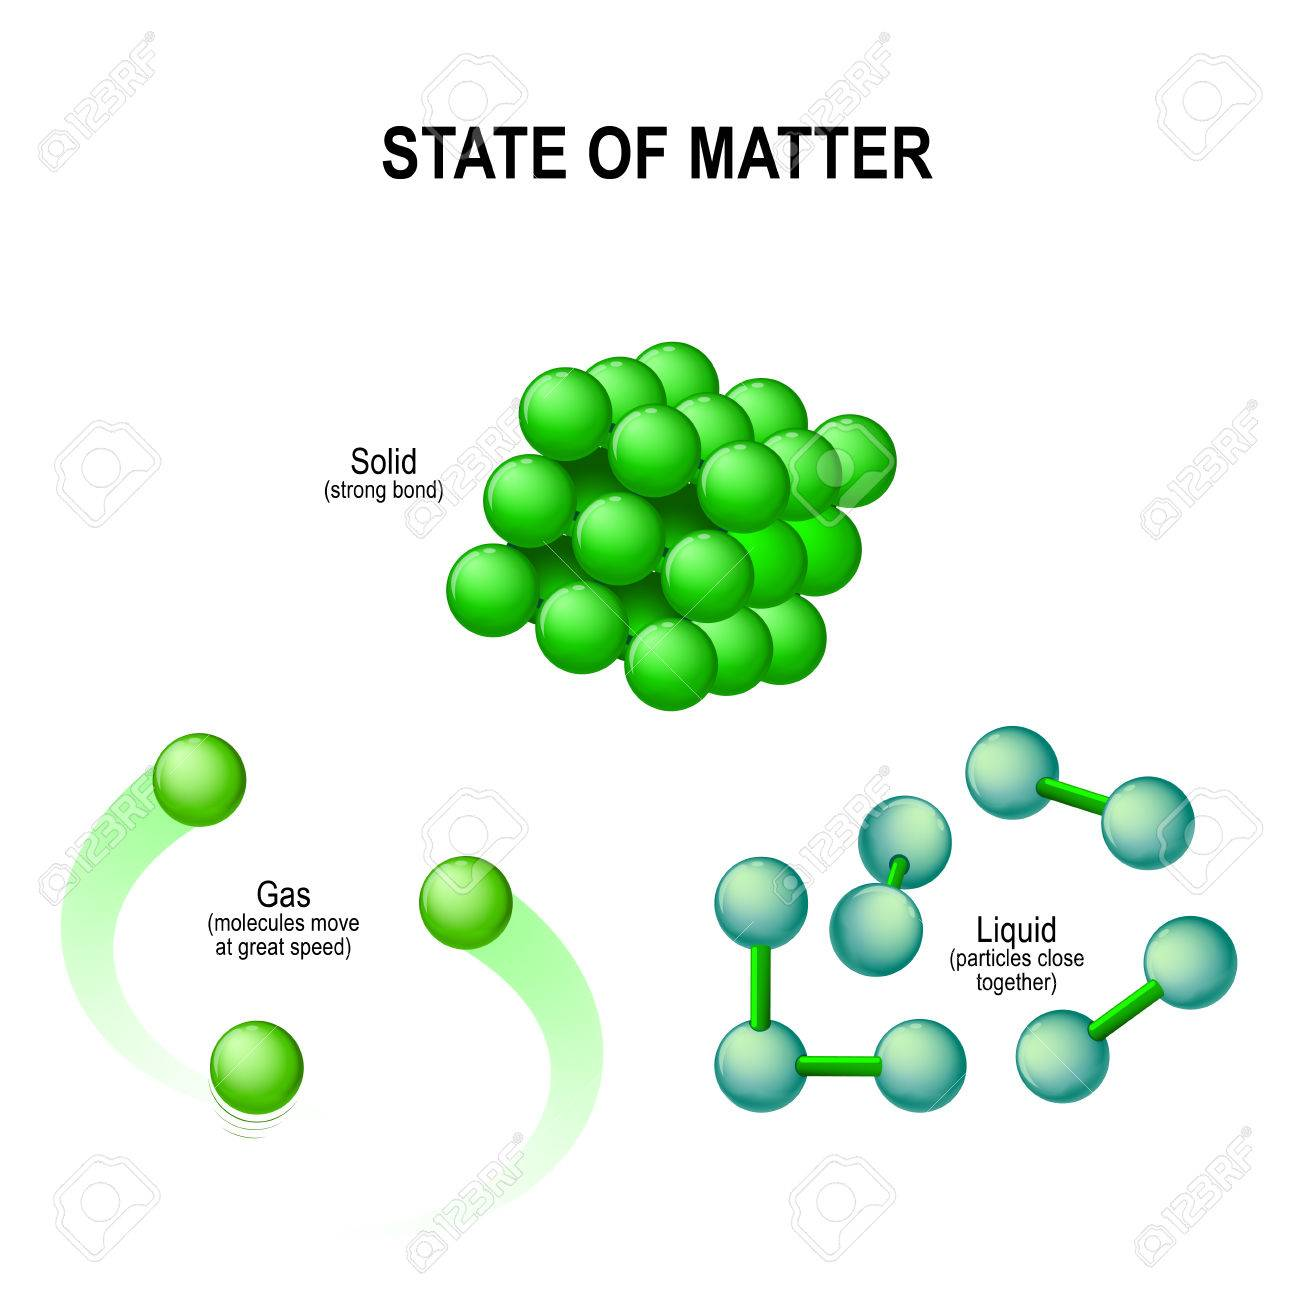 states of matter for example water solid ice liquid water